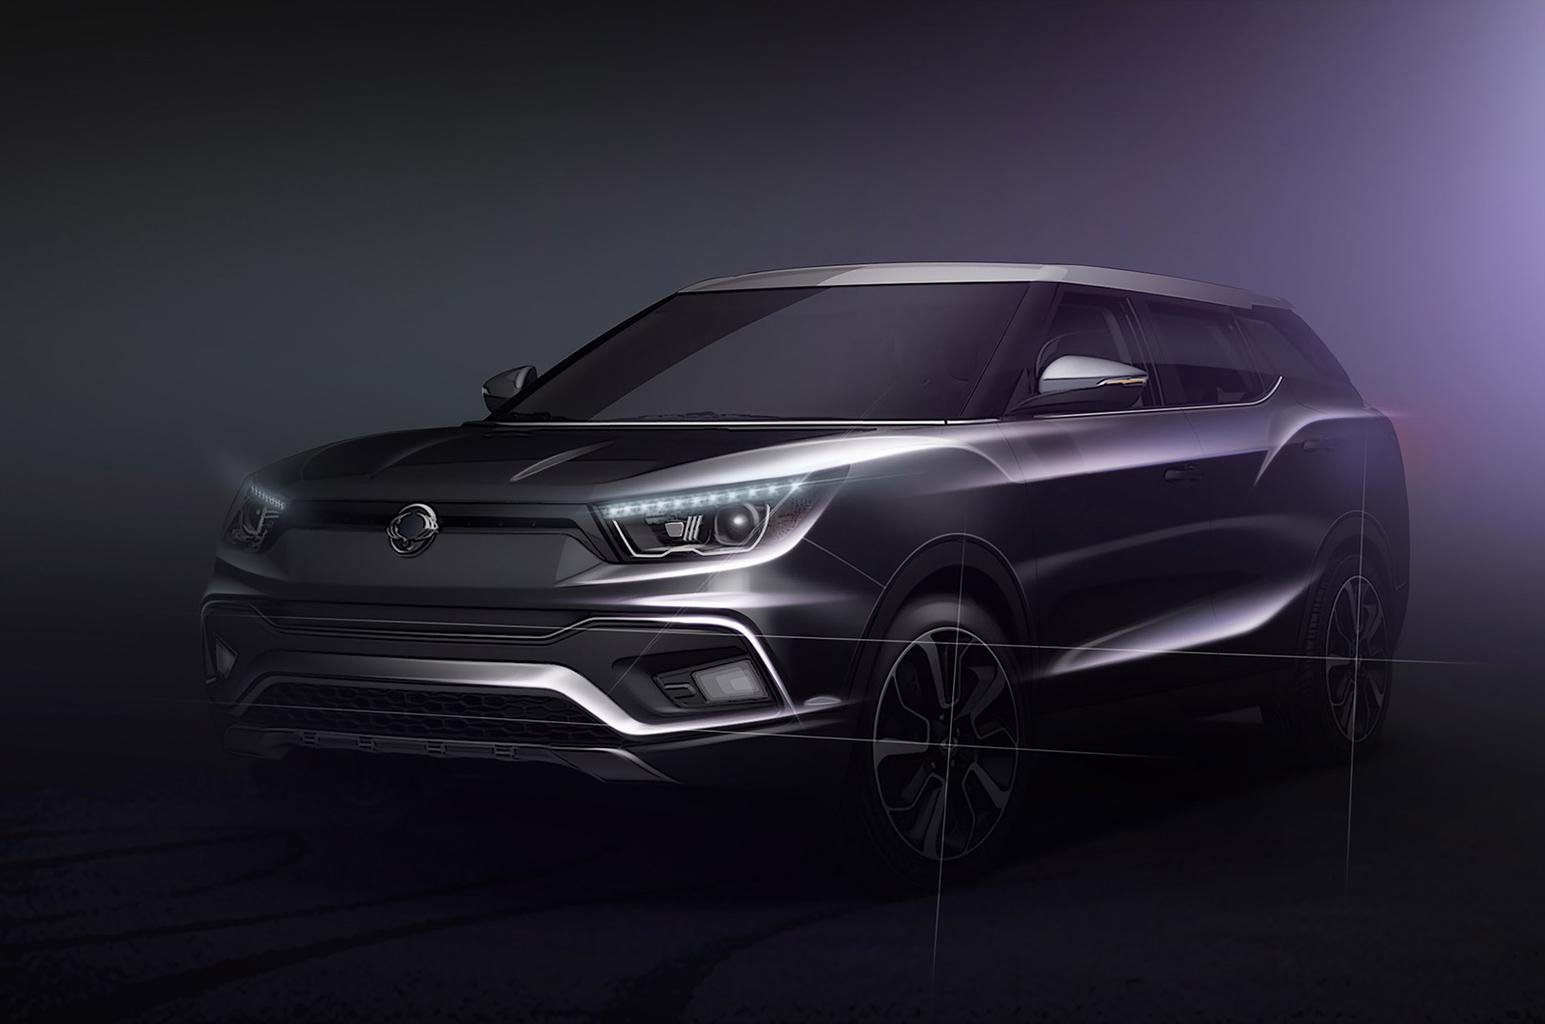 SsangYong to show extended Tivoli and preview new large SUV in Geneva